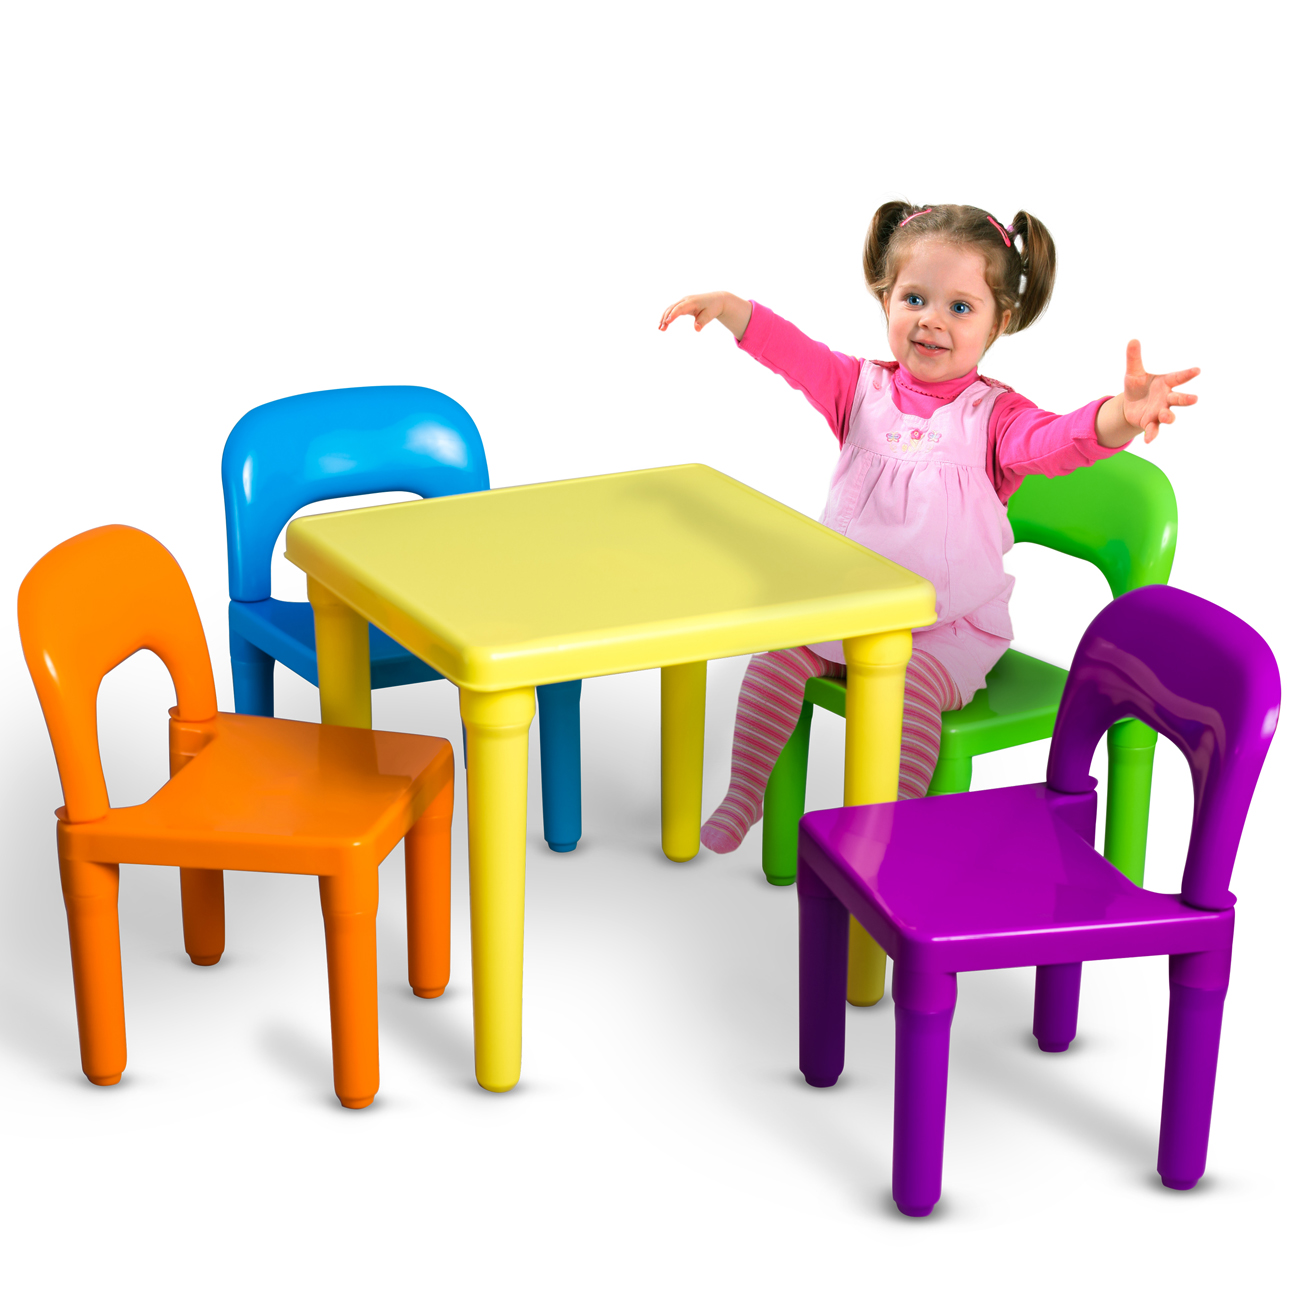 oxgord kids table and chairs play set for toddler child toy activity VMDLNYC